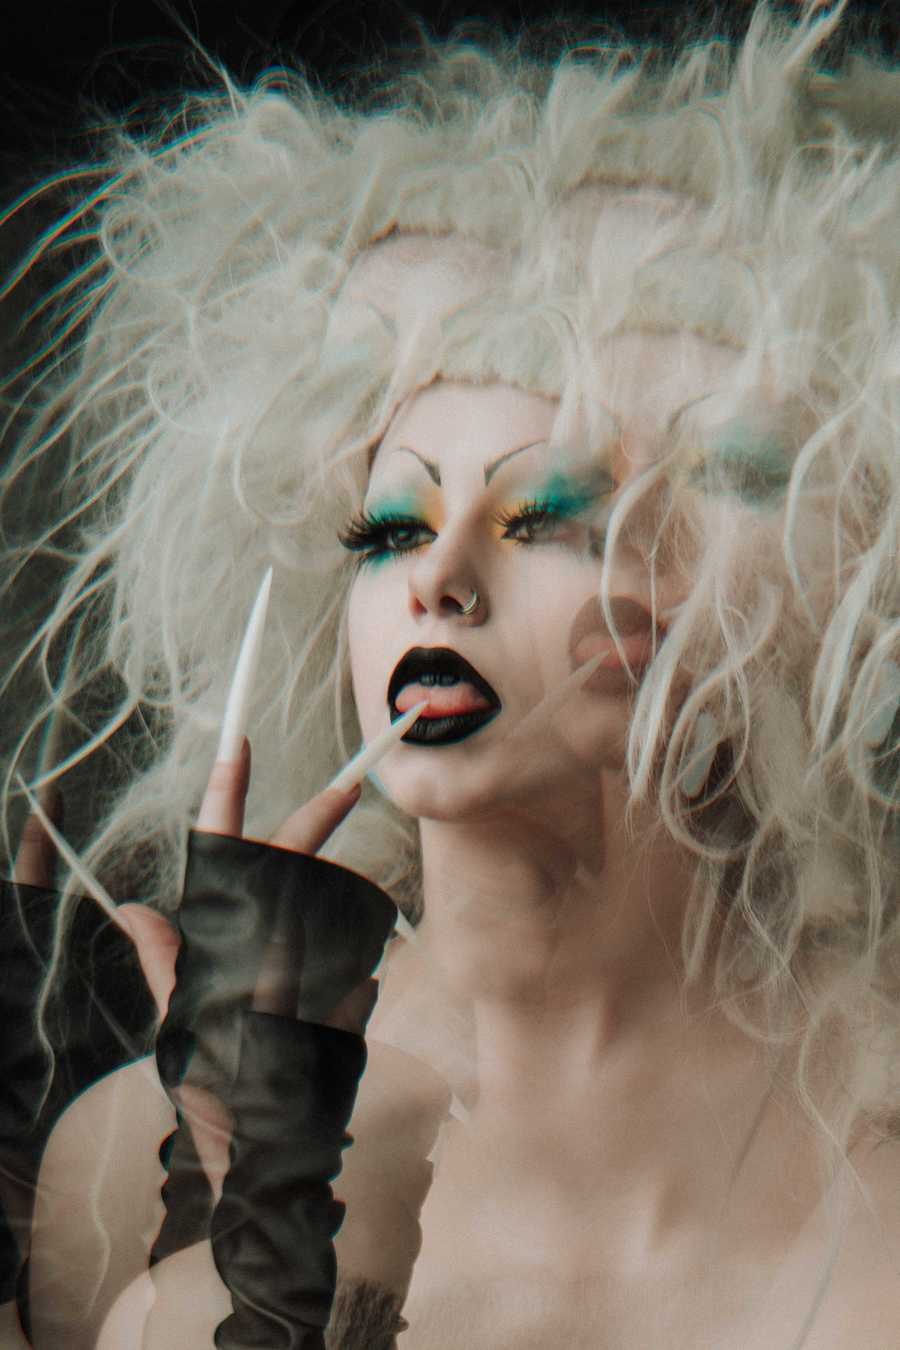 ABHORA / Photography by ShaziaHogarthPhotographer, Model RoosJames, Makeup by RoosJames, Post processing by ShaziaHogarthPhotographer, Stylist RoosJames / Uploaded 15th June 2018 @ 09:16 PM